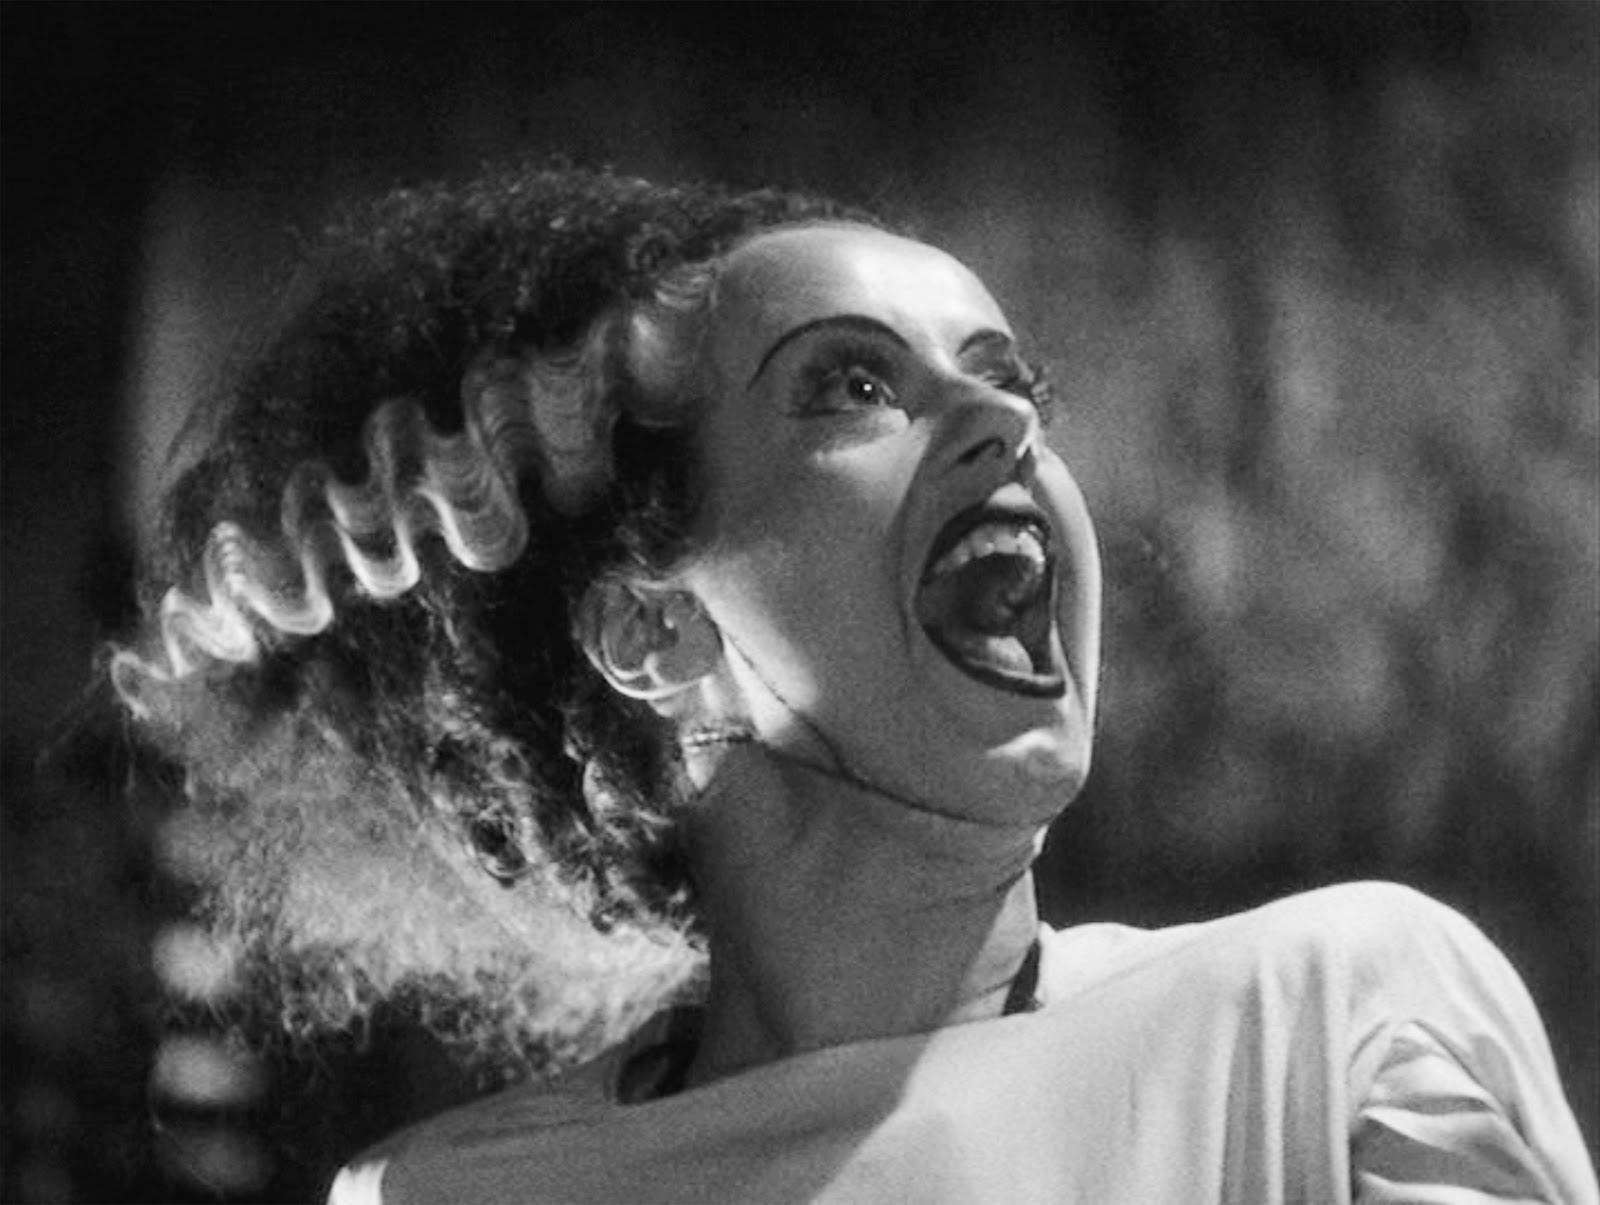 Iconic Elsa Lancaster scream in Bride of Frankenstein